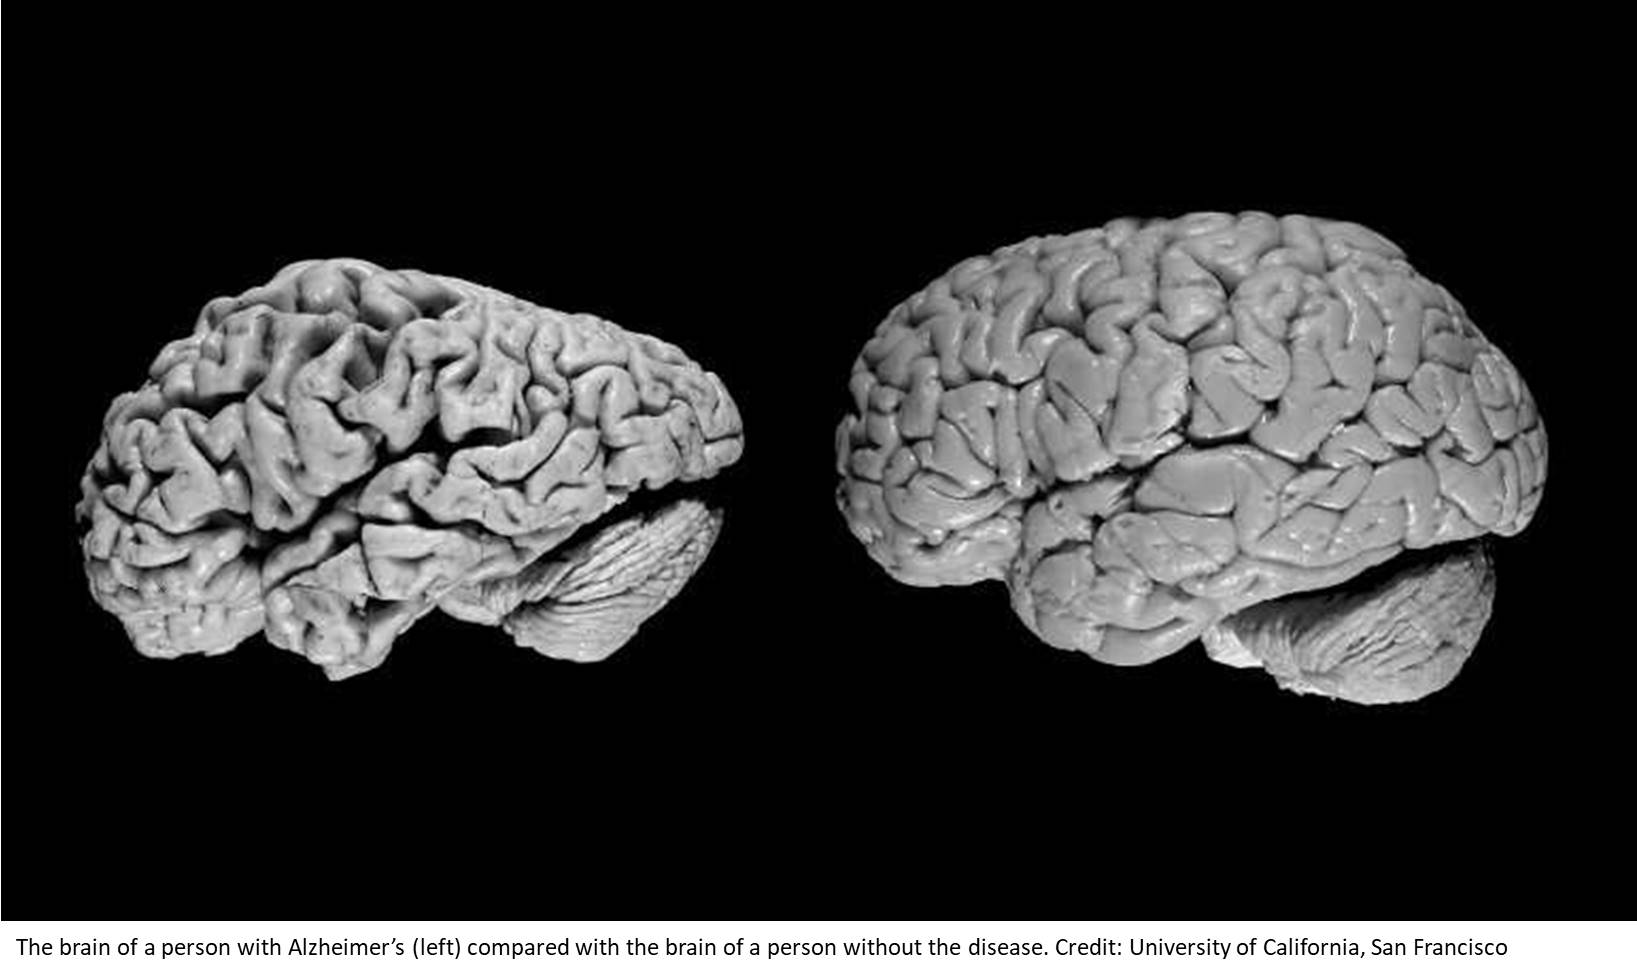 Detecting Alzheimer's disease six months before diagnosis using AI